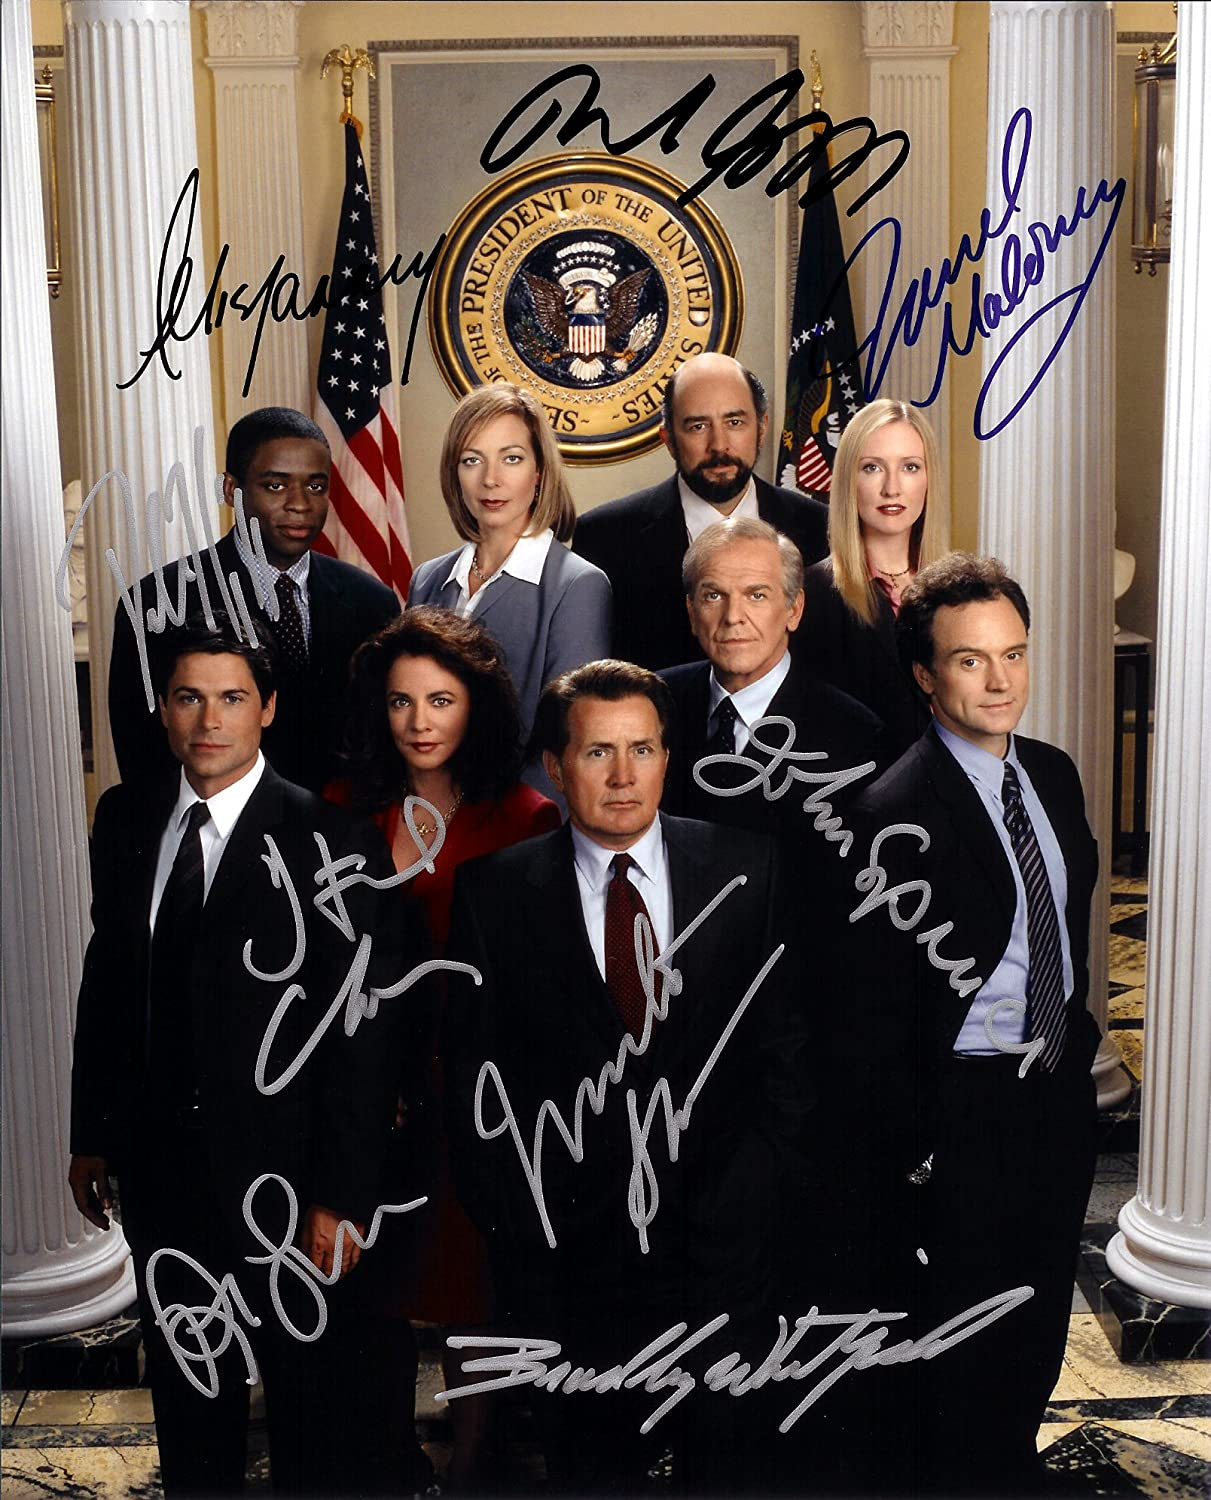 The West Wing TV Series Cast Signed Autographed 8 X 10 RP Photo - Mint Condition got7 got 7 autographed signed group photo flight log arrival 6 inches new korean freeshipping 03 2017